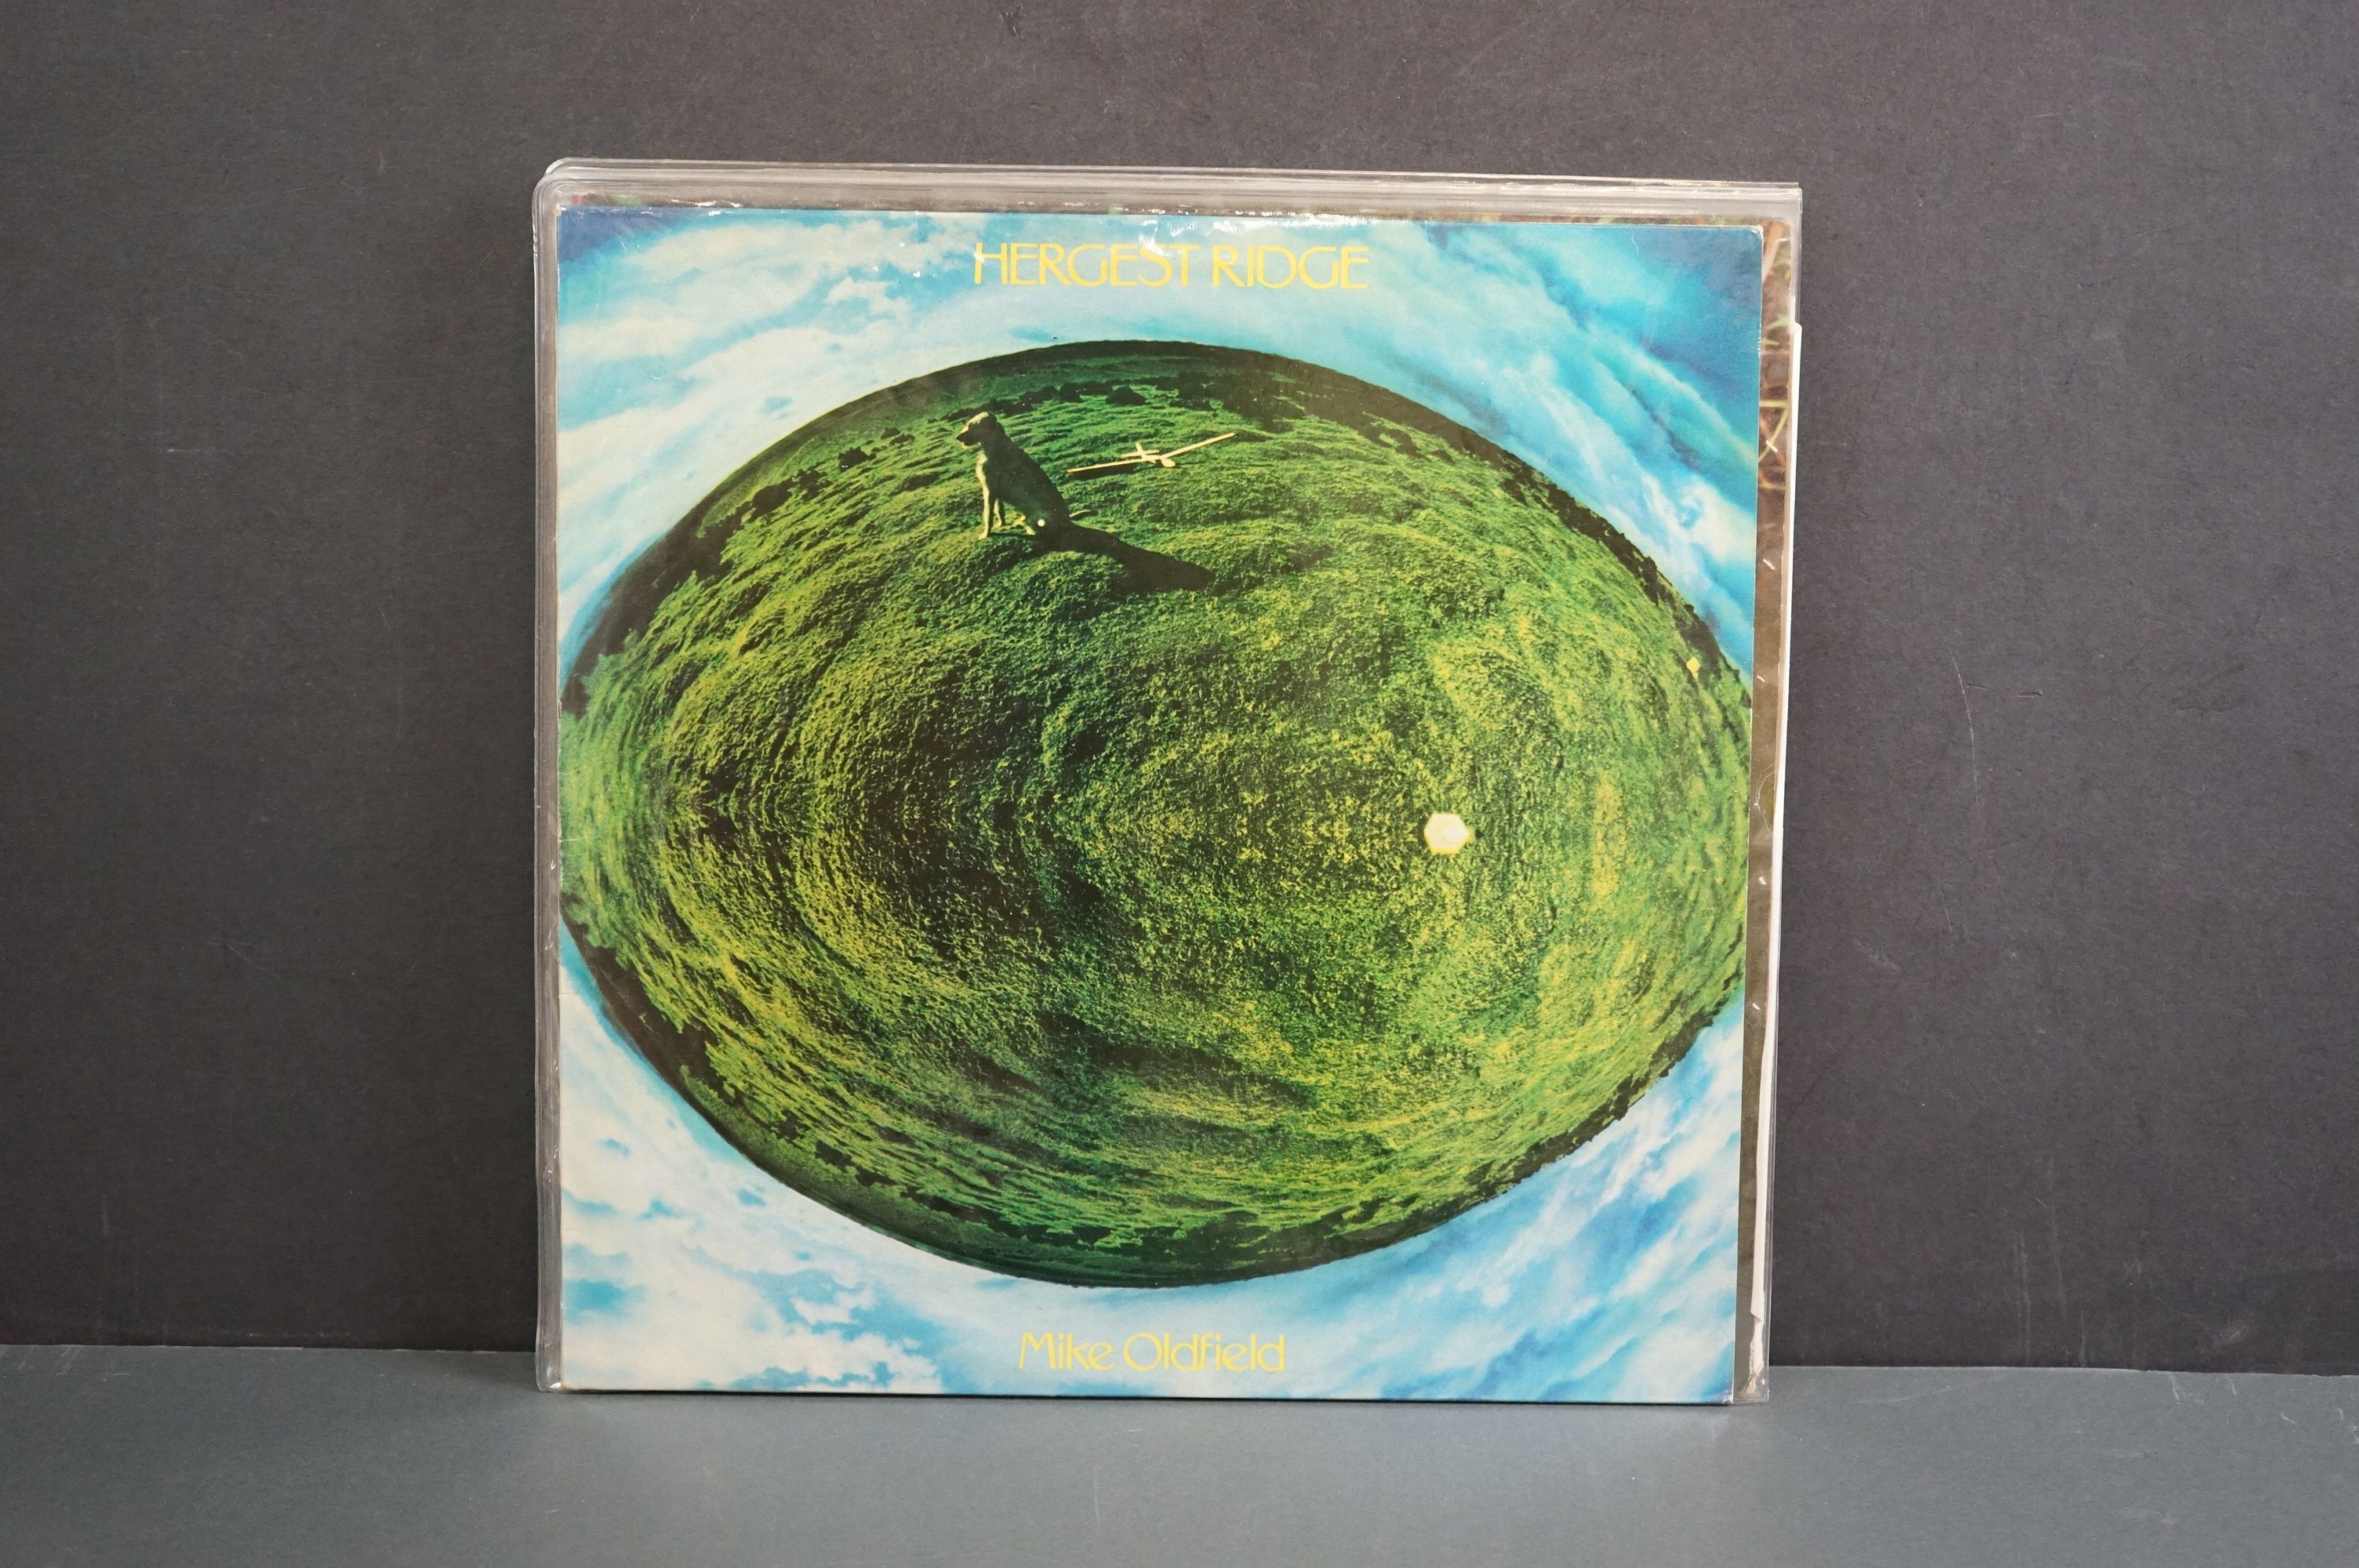 Vinyl - 14 Mike Oldfield LPs to include Tubular Bells, Five Miles Out, Best Of, Discovery etc, - Image 10 of 15